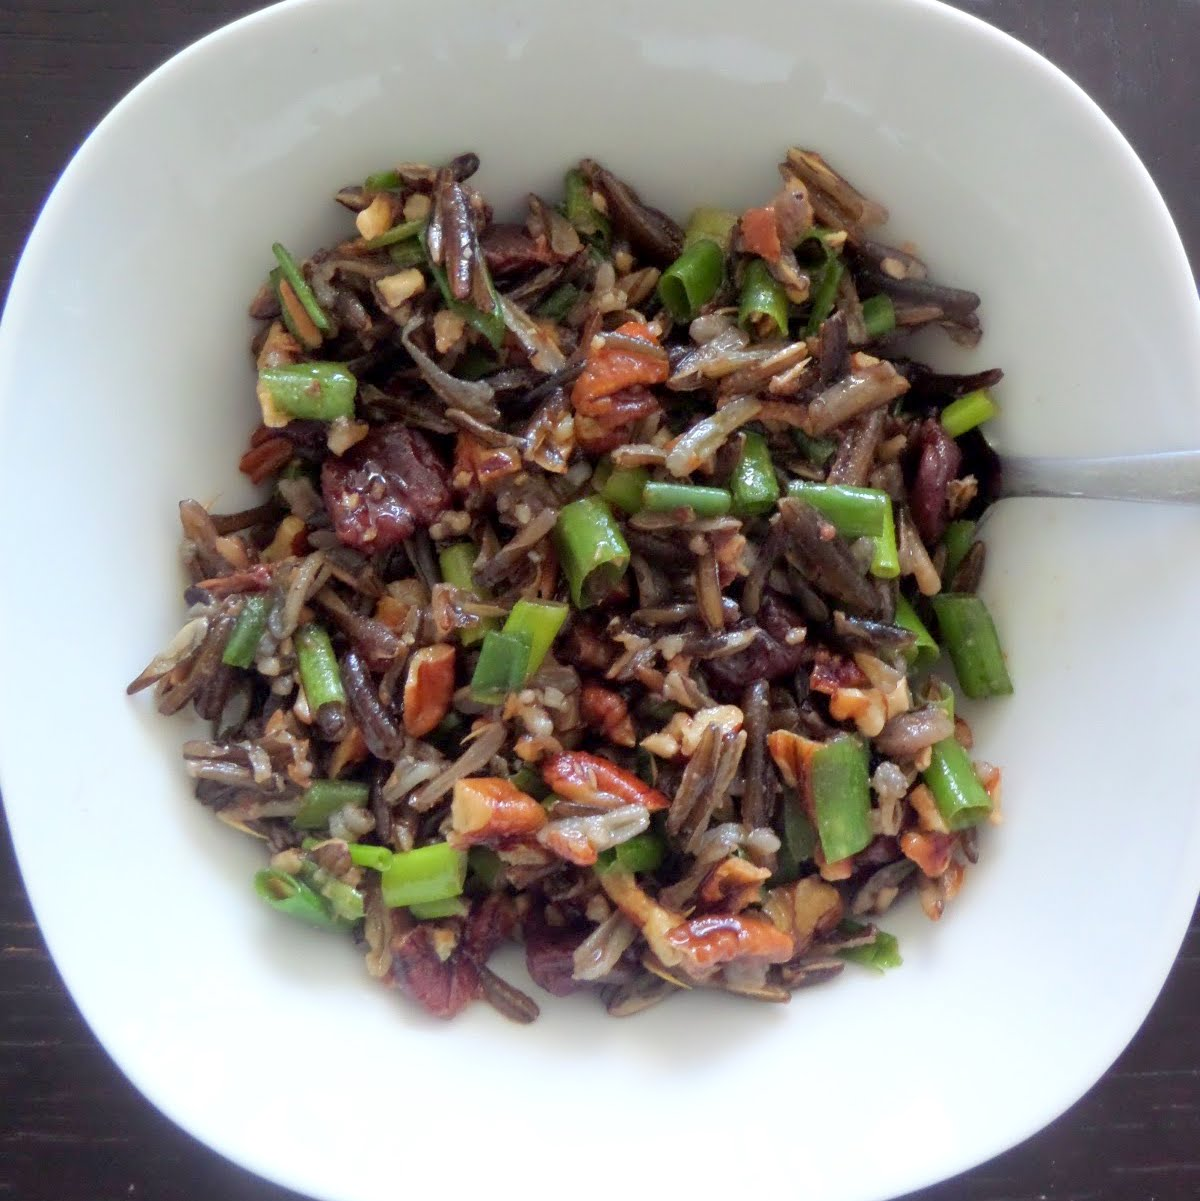 Wild Rice Cherry Pecan Salad:  A salad of wild rice, dried cherries, and pecans tossed in a raspberry vinaigrette.  It makes a great side dish or lunch.